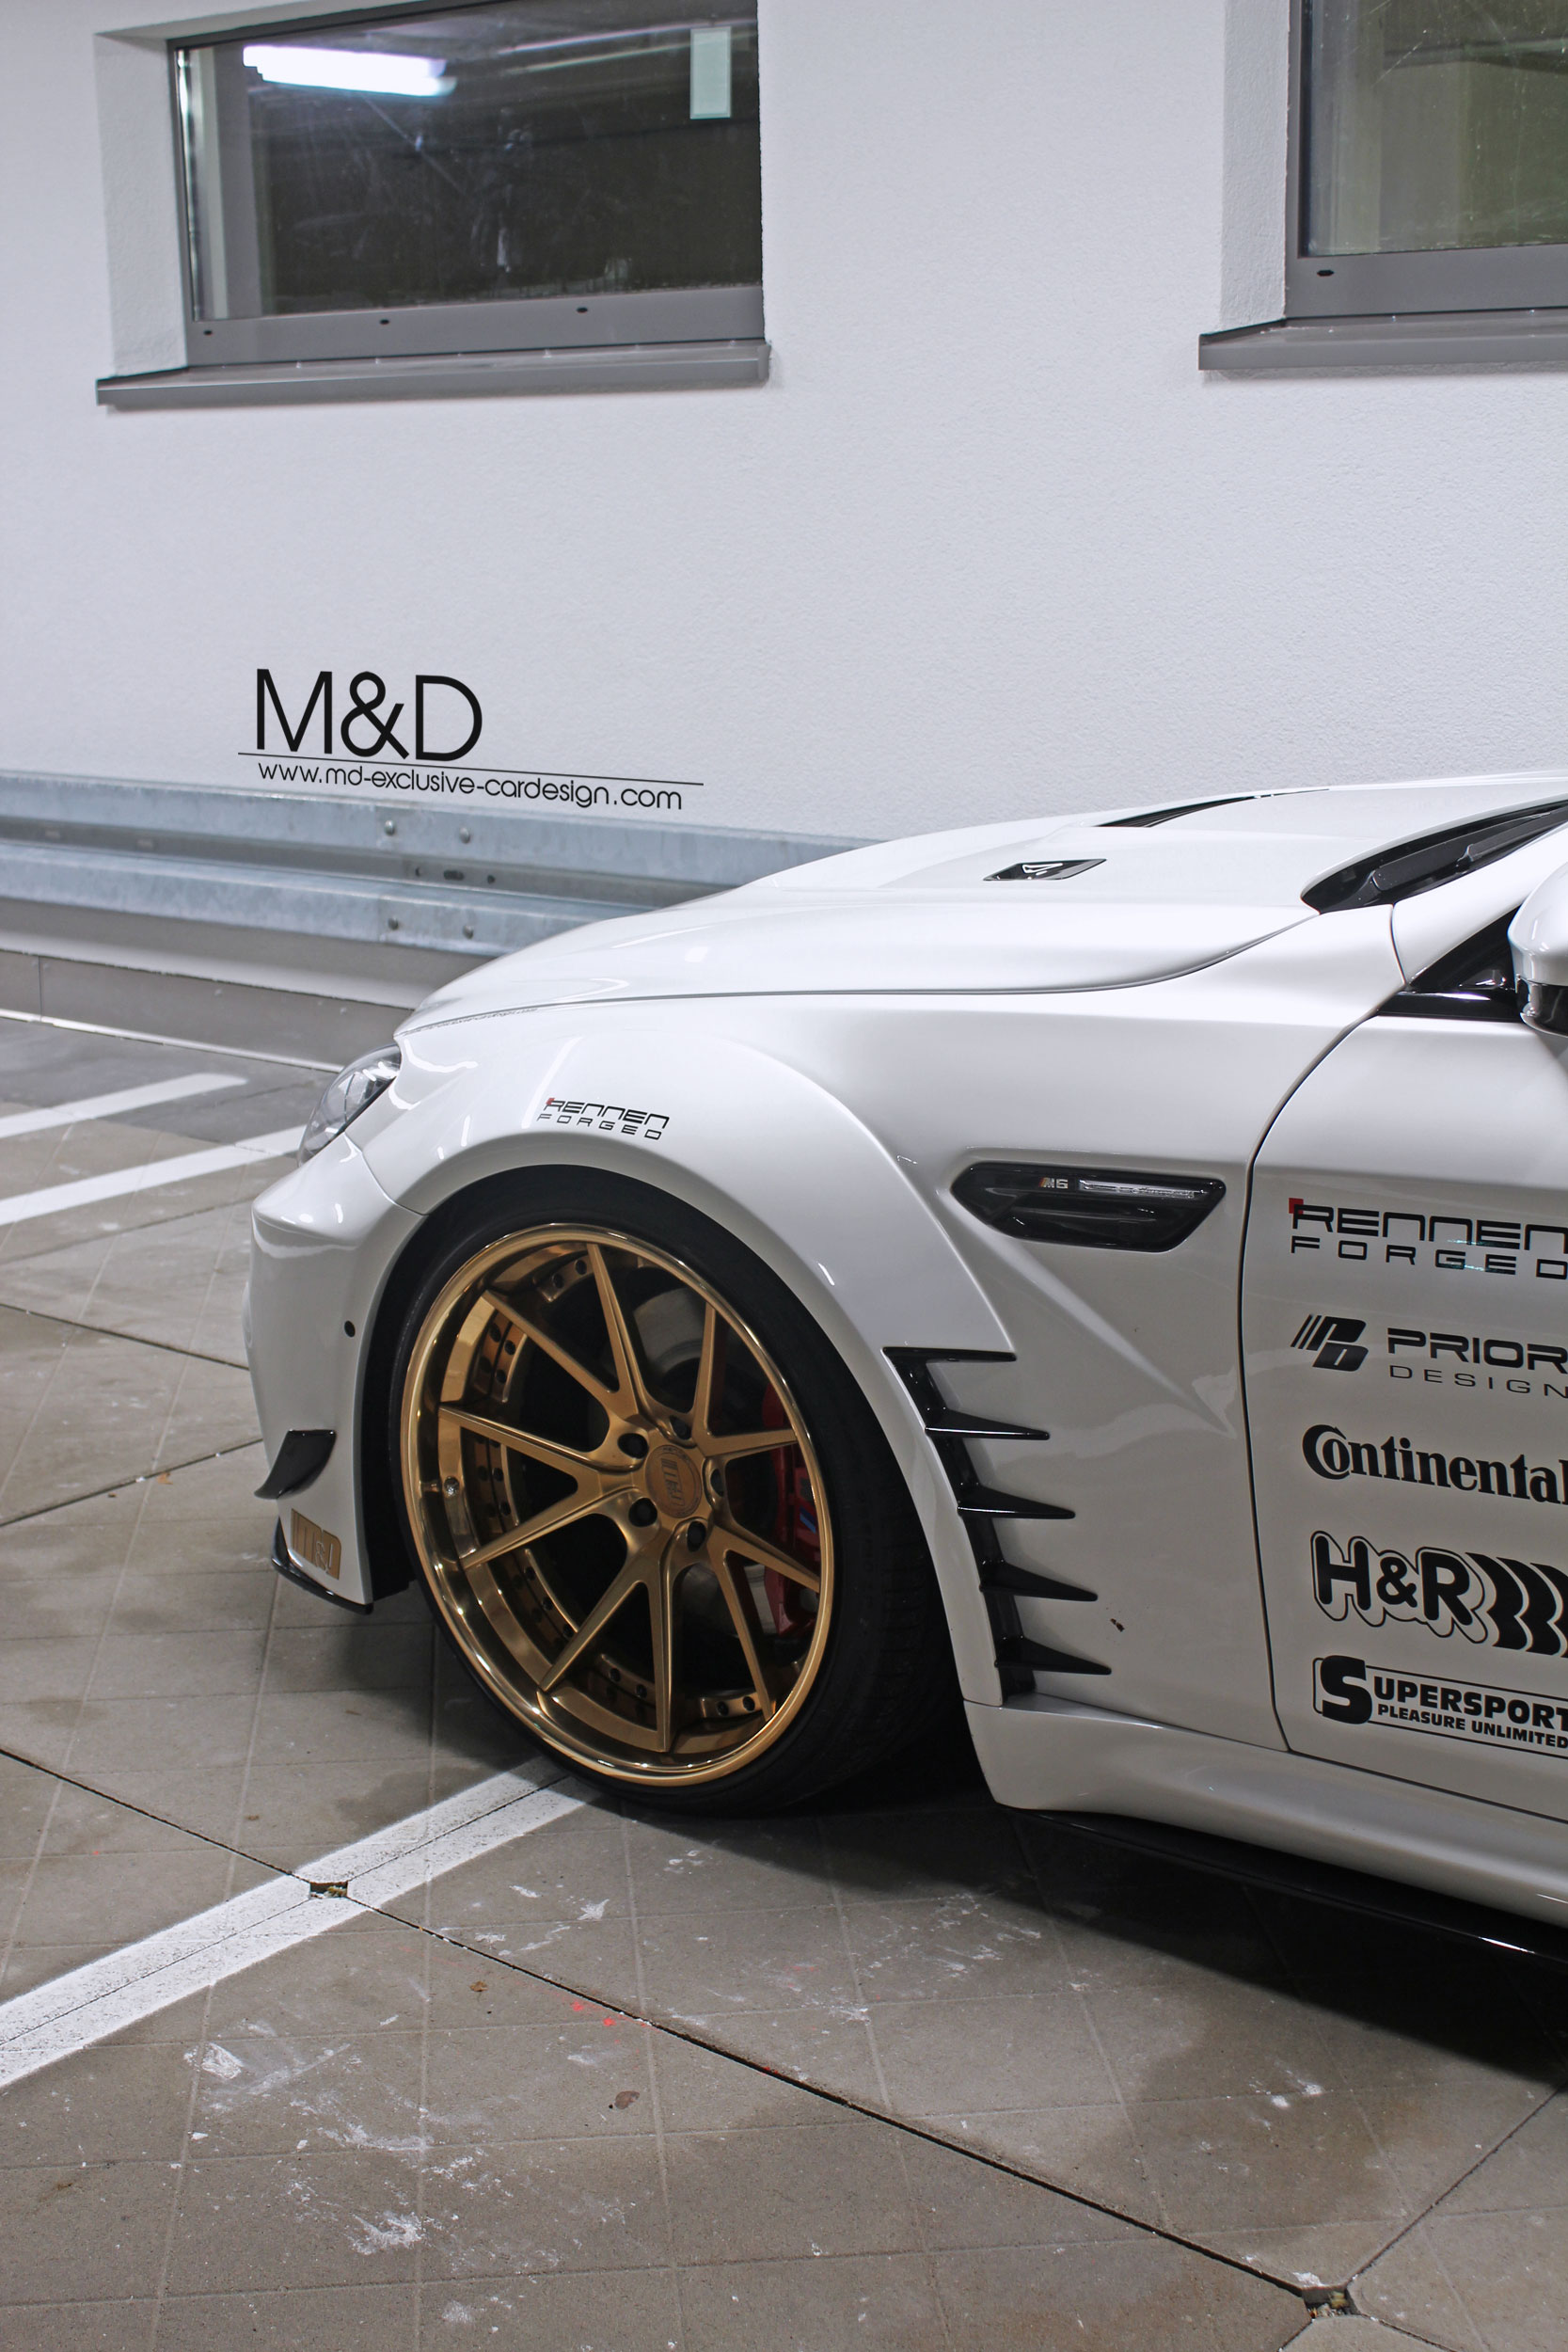 bmw-650i-coupé-pd6xx-f13-md-exclusive-cardesign-009